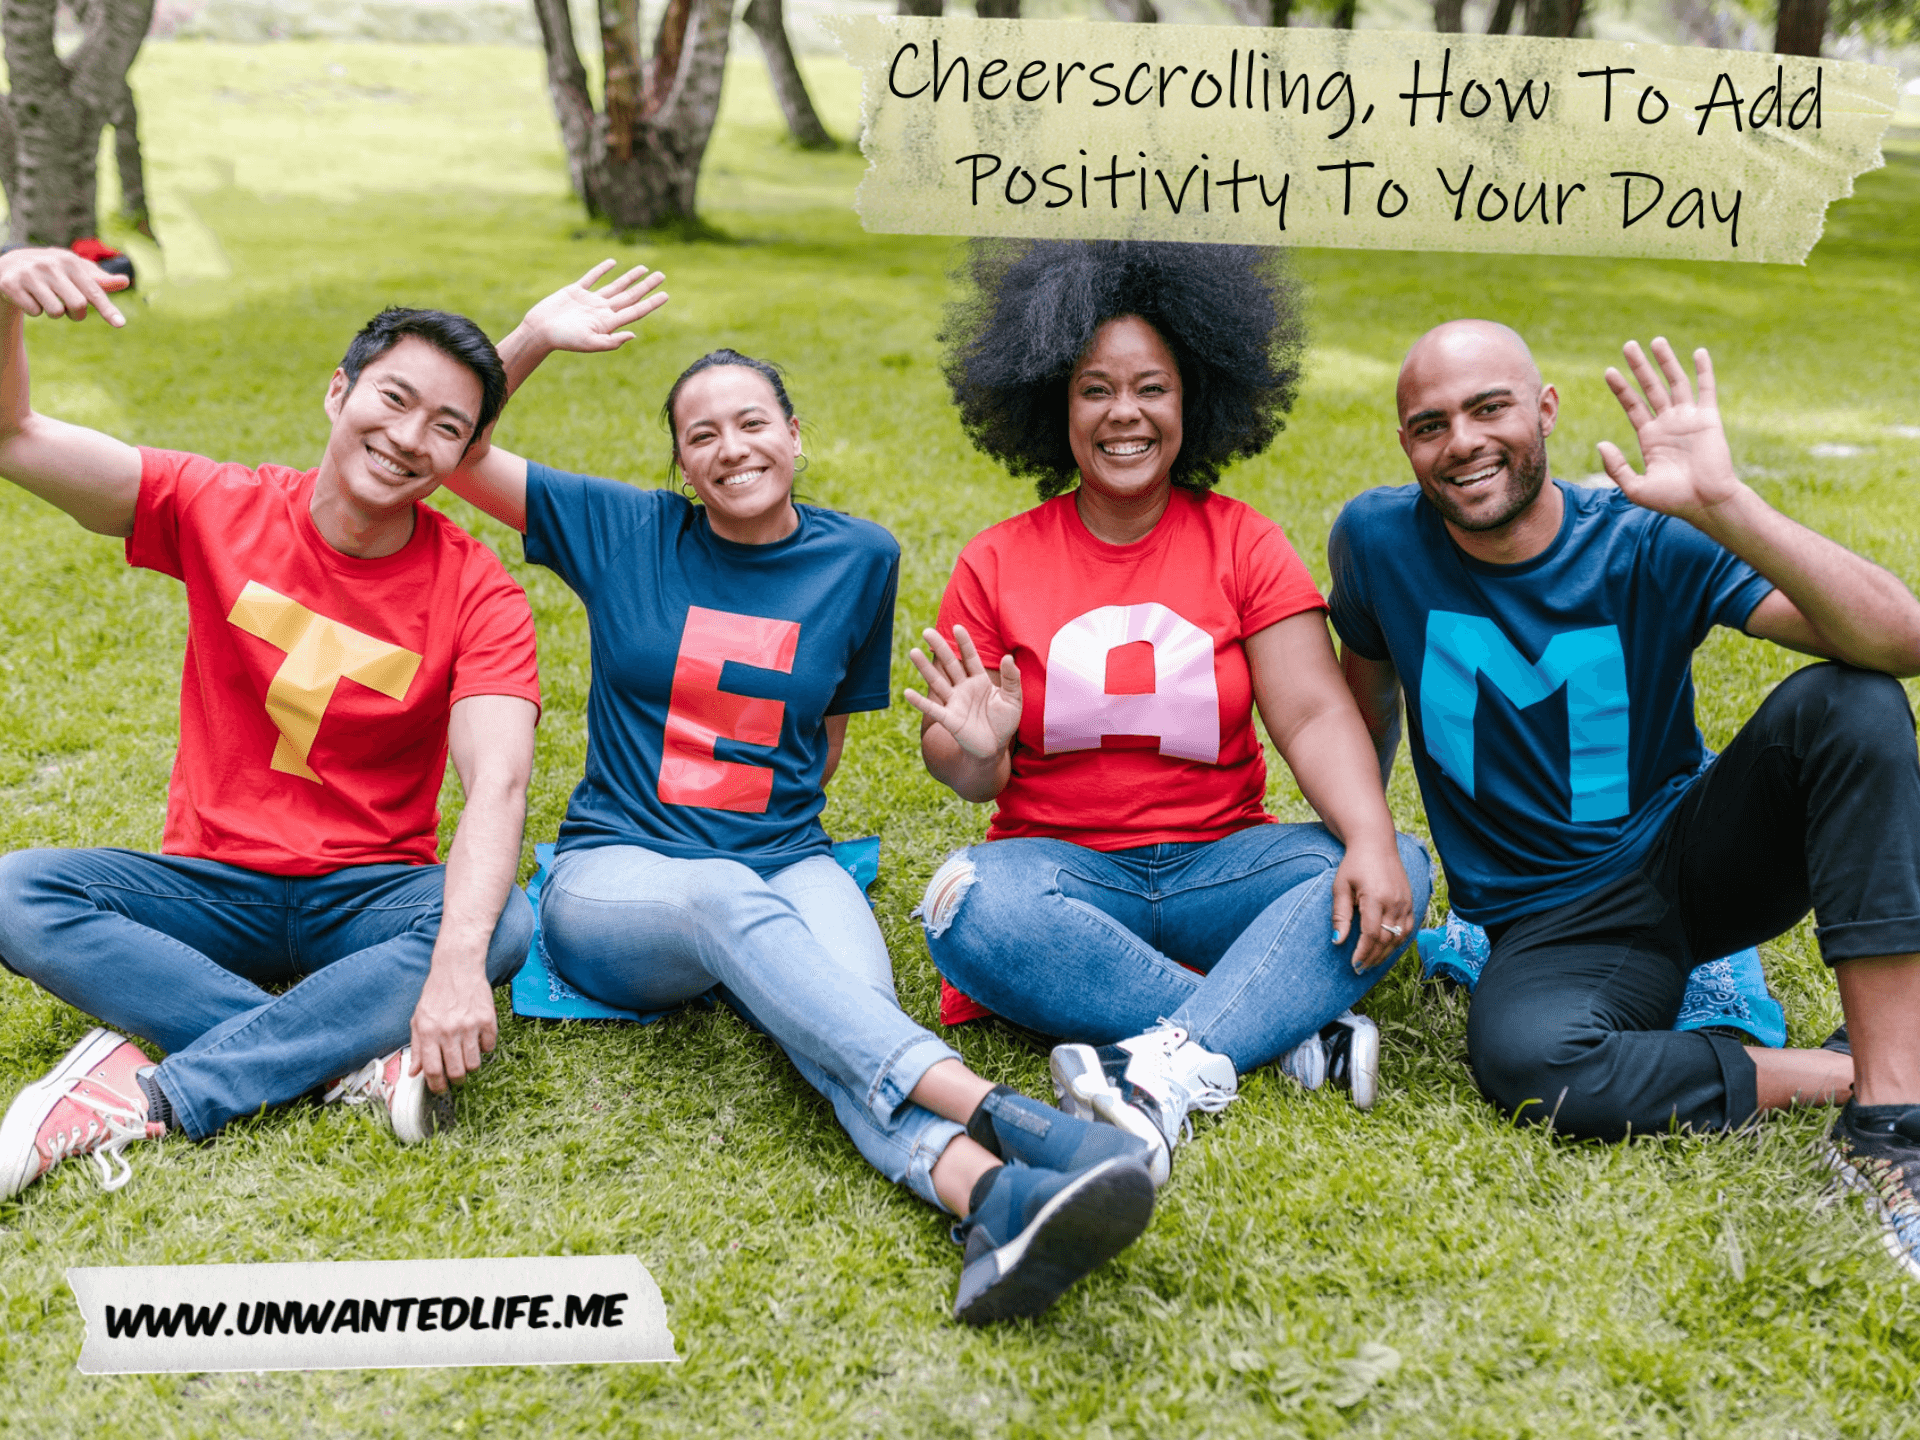 A photo of four people from different ethnic groups with T-shirts that spell out TEAM to represent the topic of the article - Cheerscrolling, How To Add Positivity To Your Day